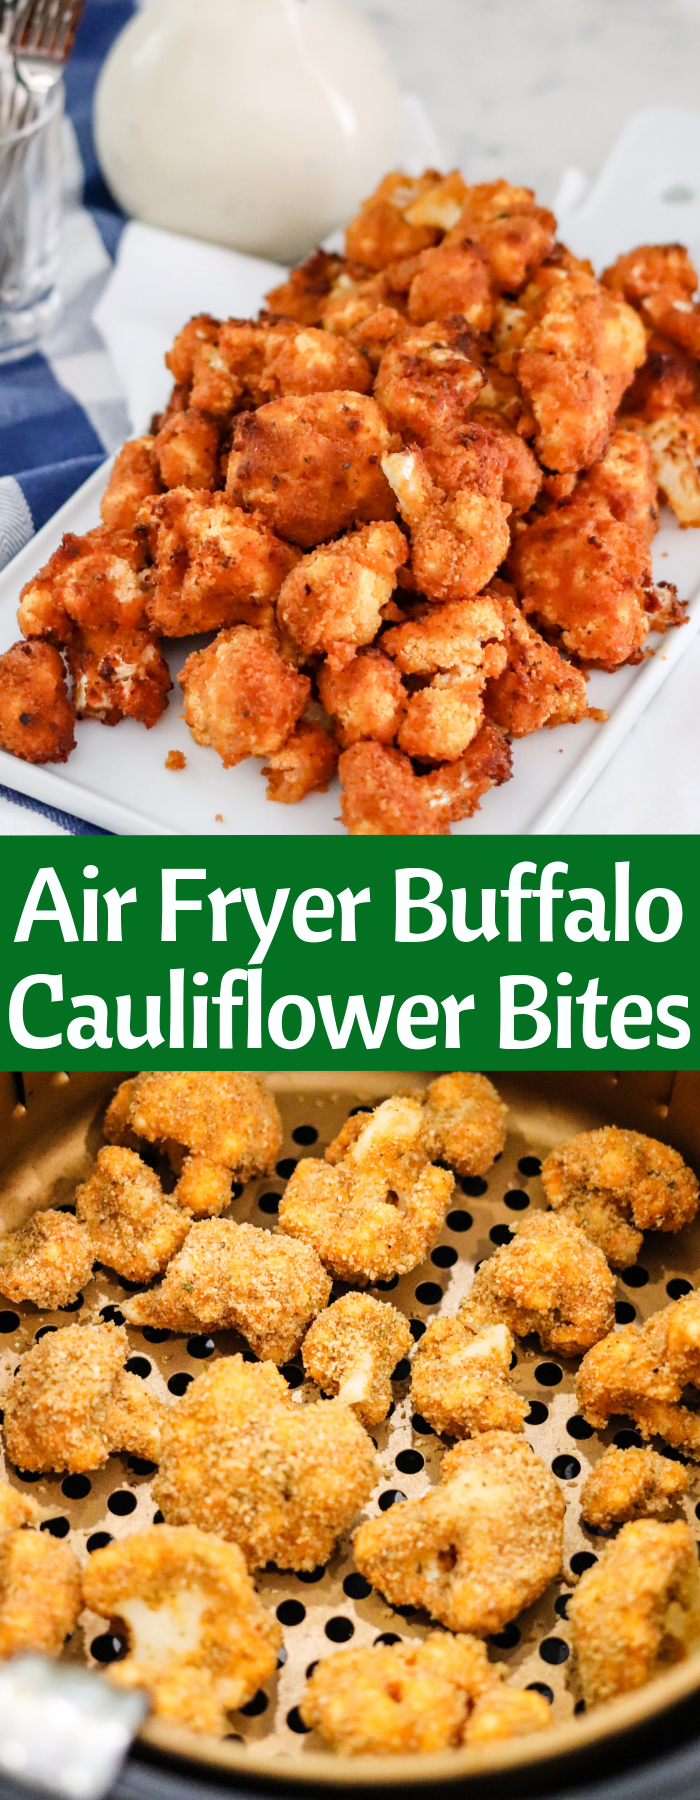 These Crispy Air Fryer Buffalo Cauliflower Bites are the perfect appetizer! With no oil and only a handful of ingredients, they're easy and guilt-free. Also find baking directions on the page if you don't have an air fryer!